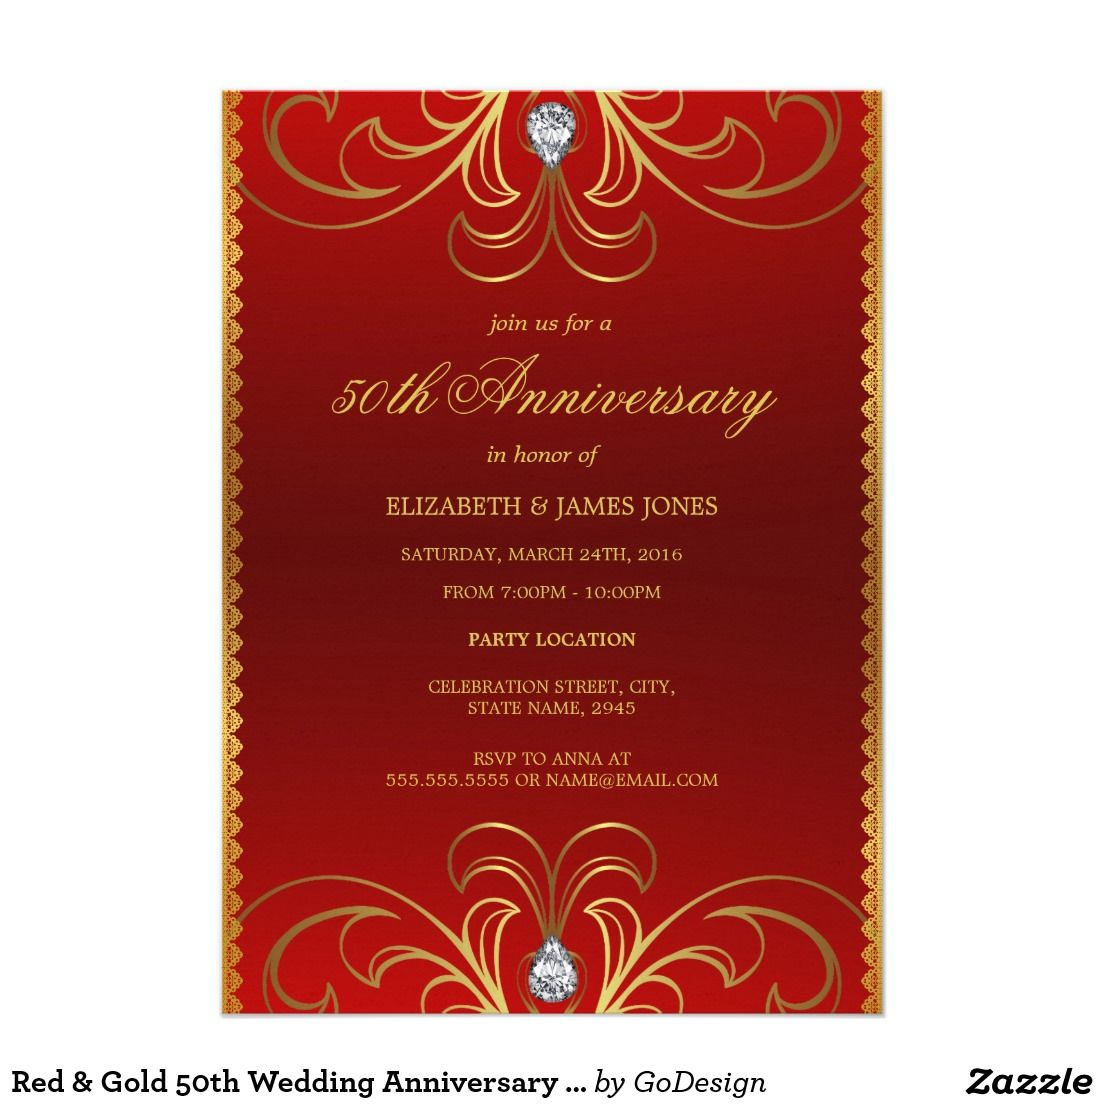 Red & Gold 50th Wedding Anniversary Invitation | Lace and bow ...